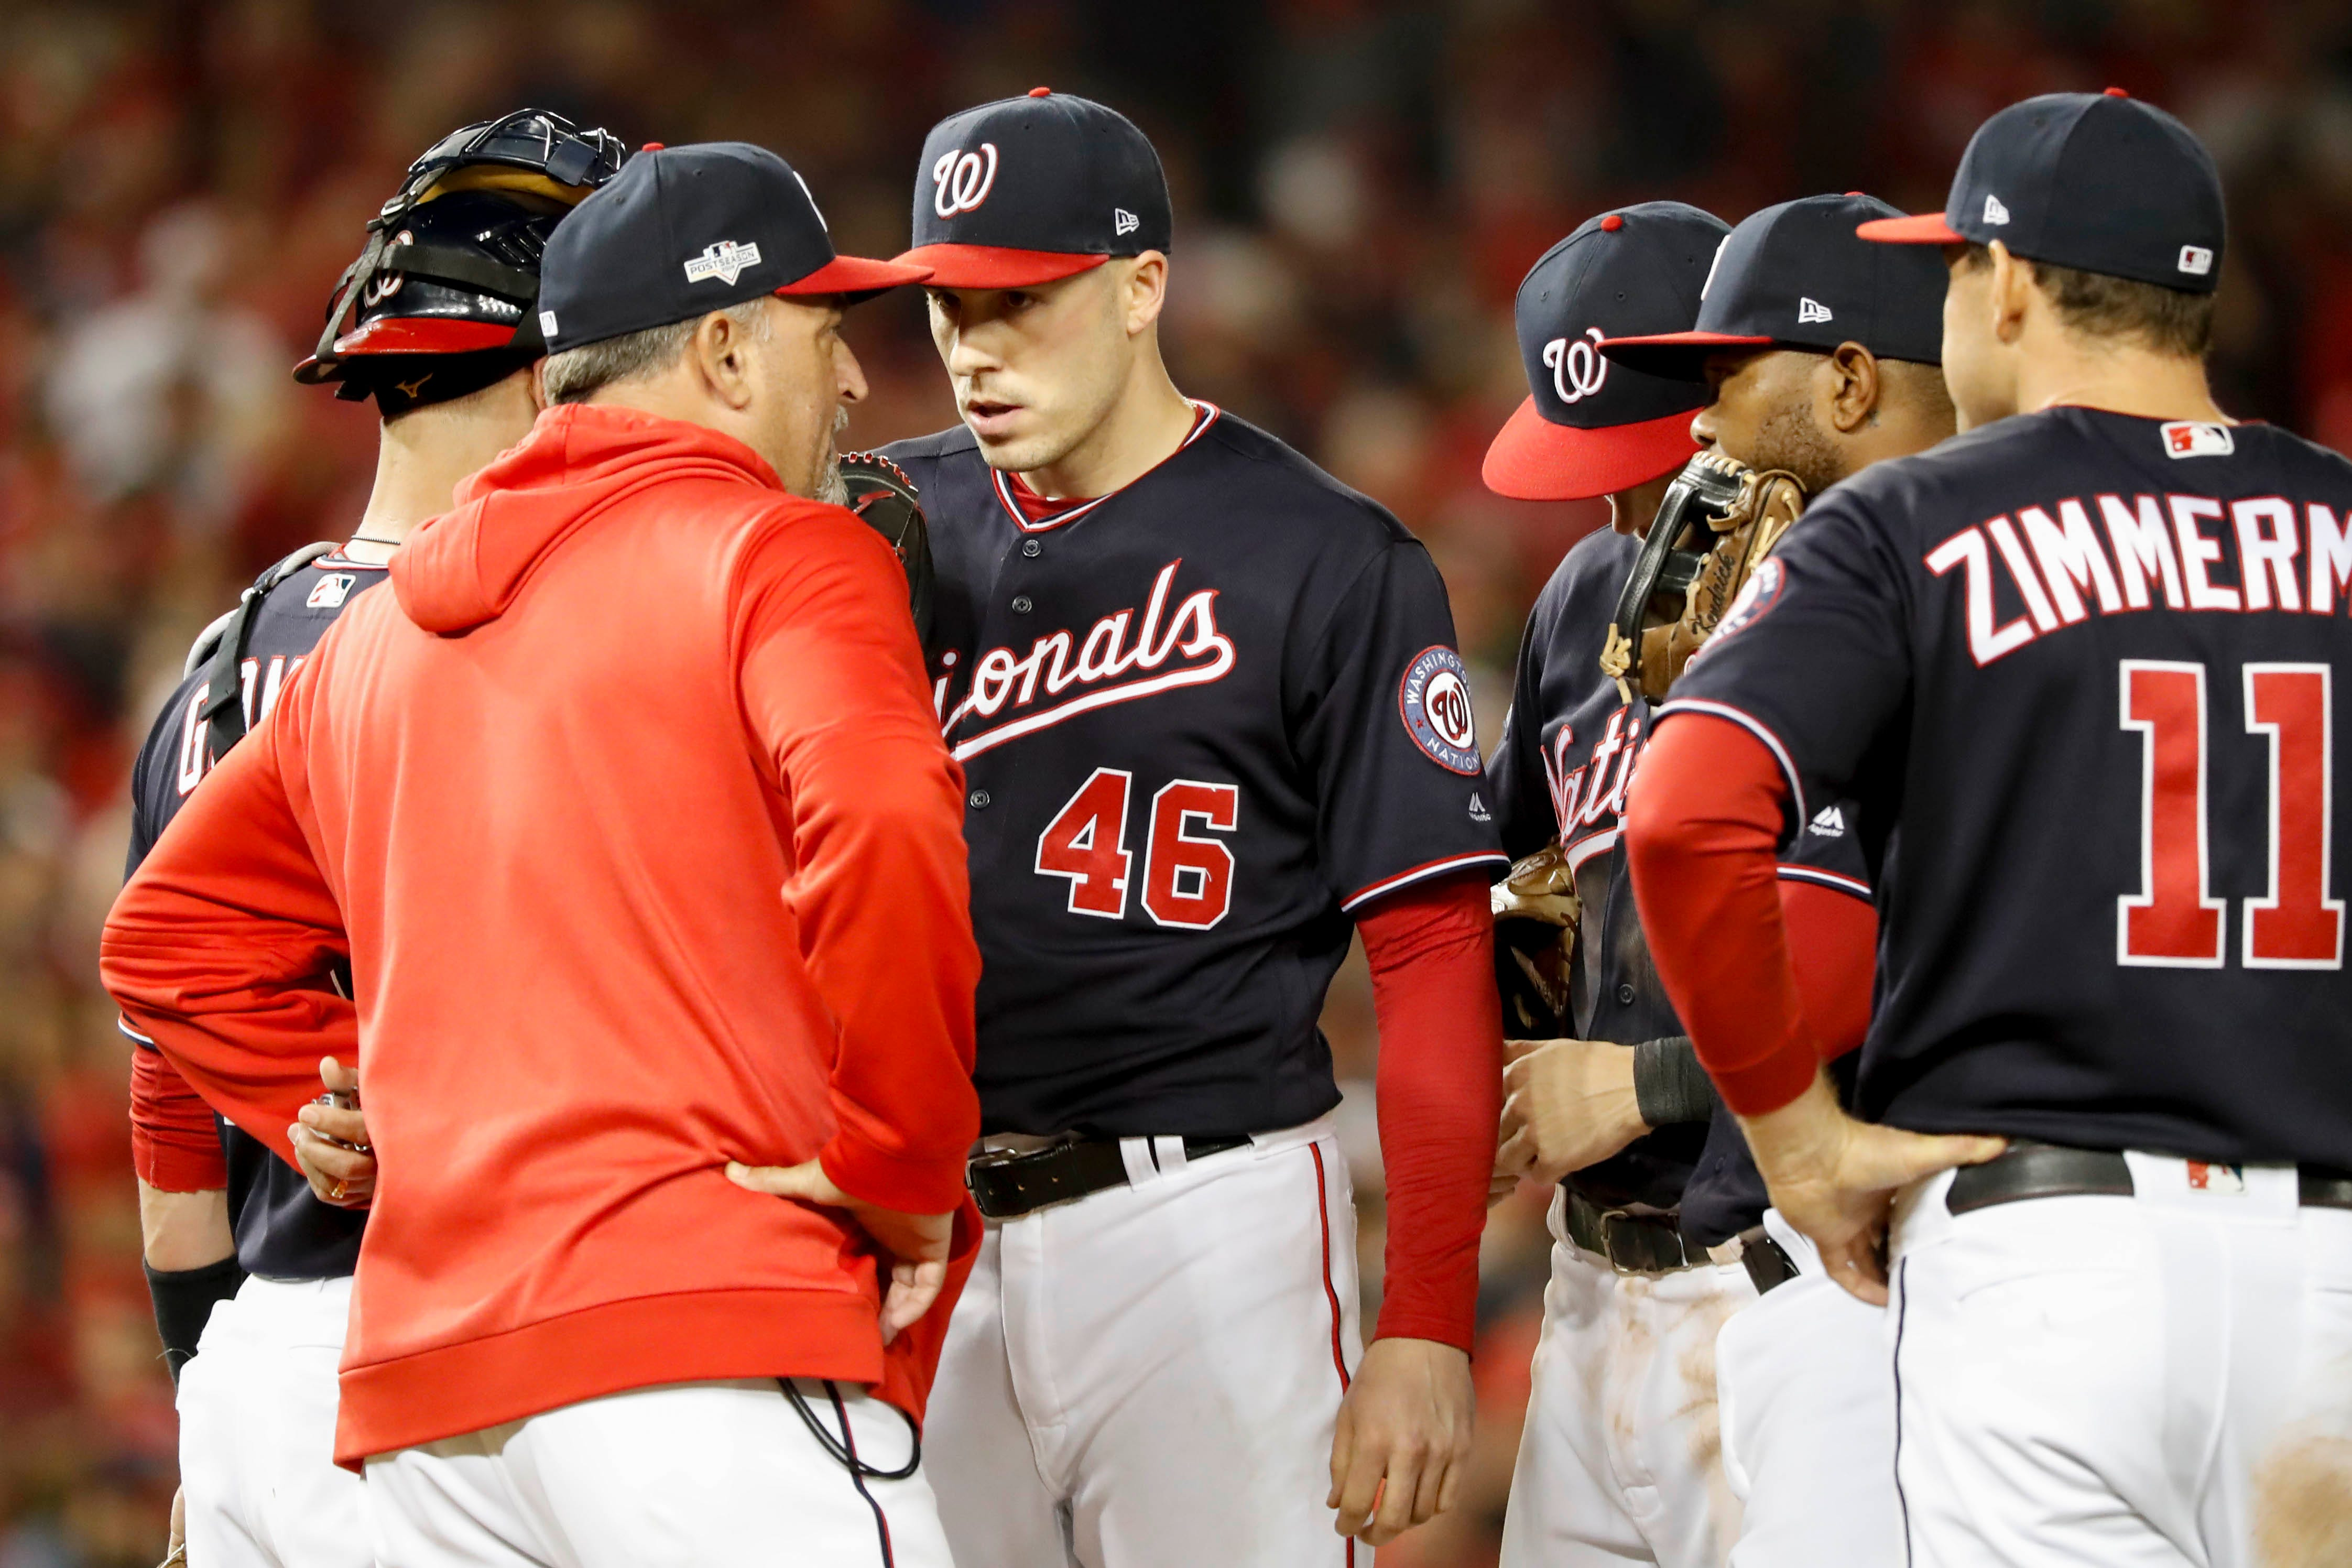 As pitch-tipping paranoia lingers, Astros and Nationals will have their eyes on each other in World Series